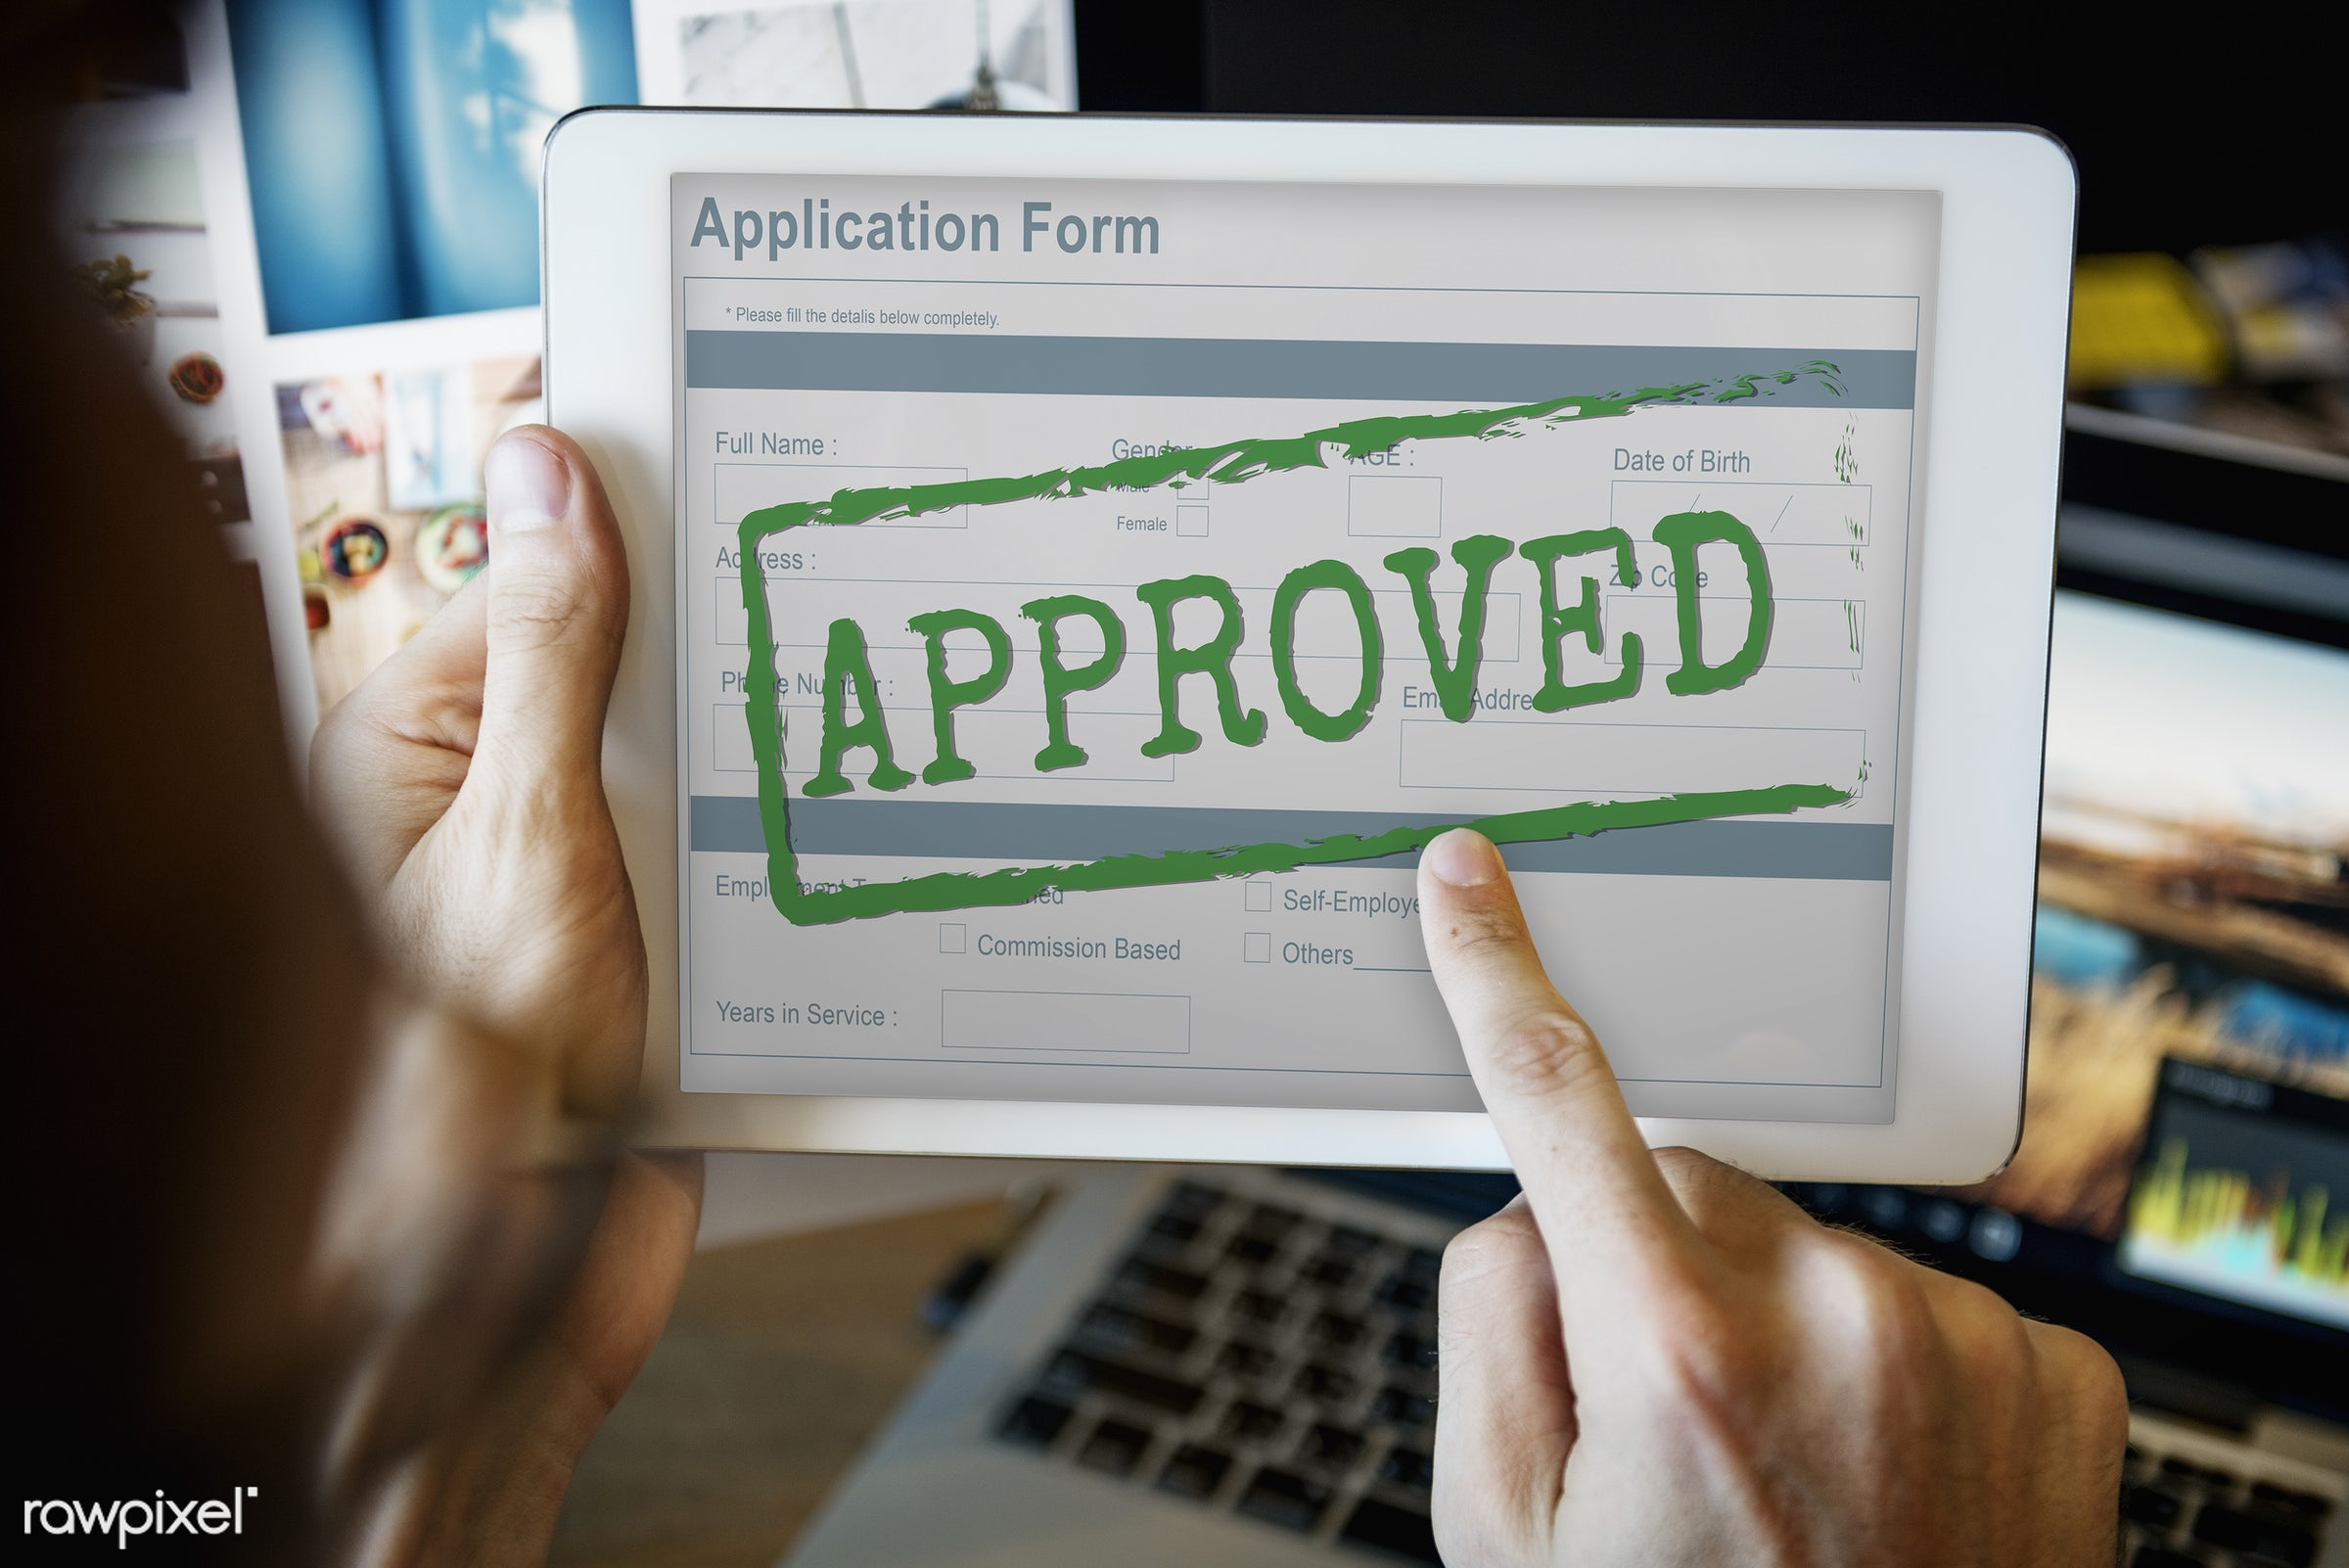 accept, agreement, allowed, application, application form, approval, approved, authorized, browsing, certified, checklist,...